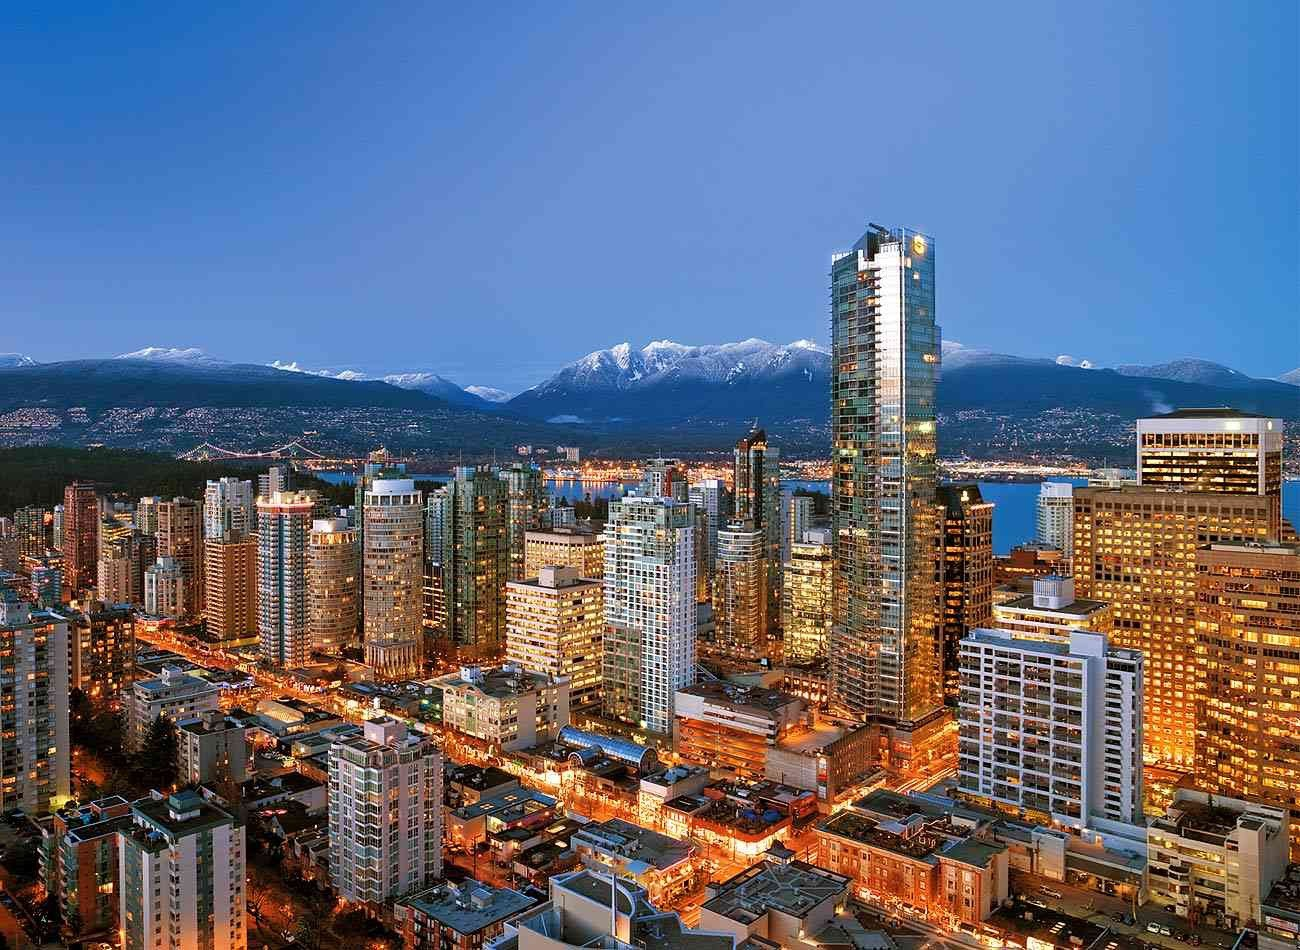 New tea room addition proposed for Shangri-La Vancouver